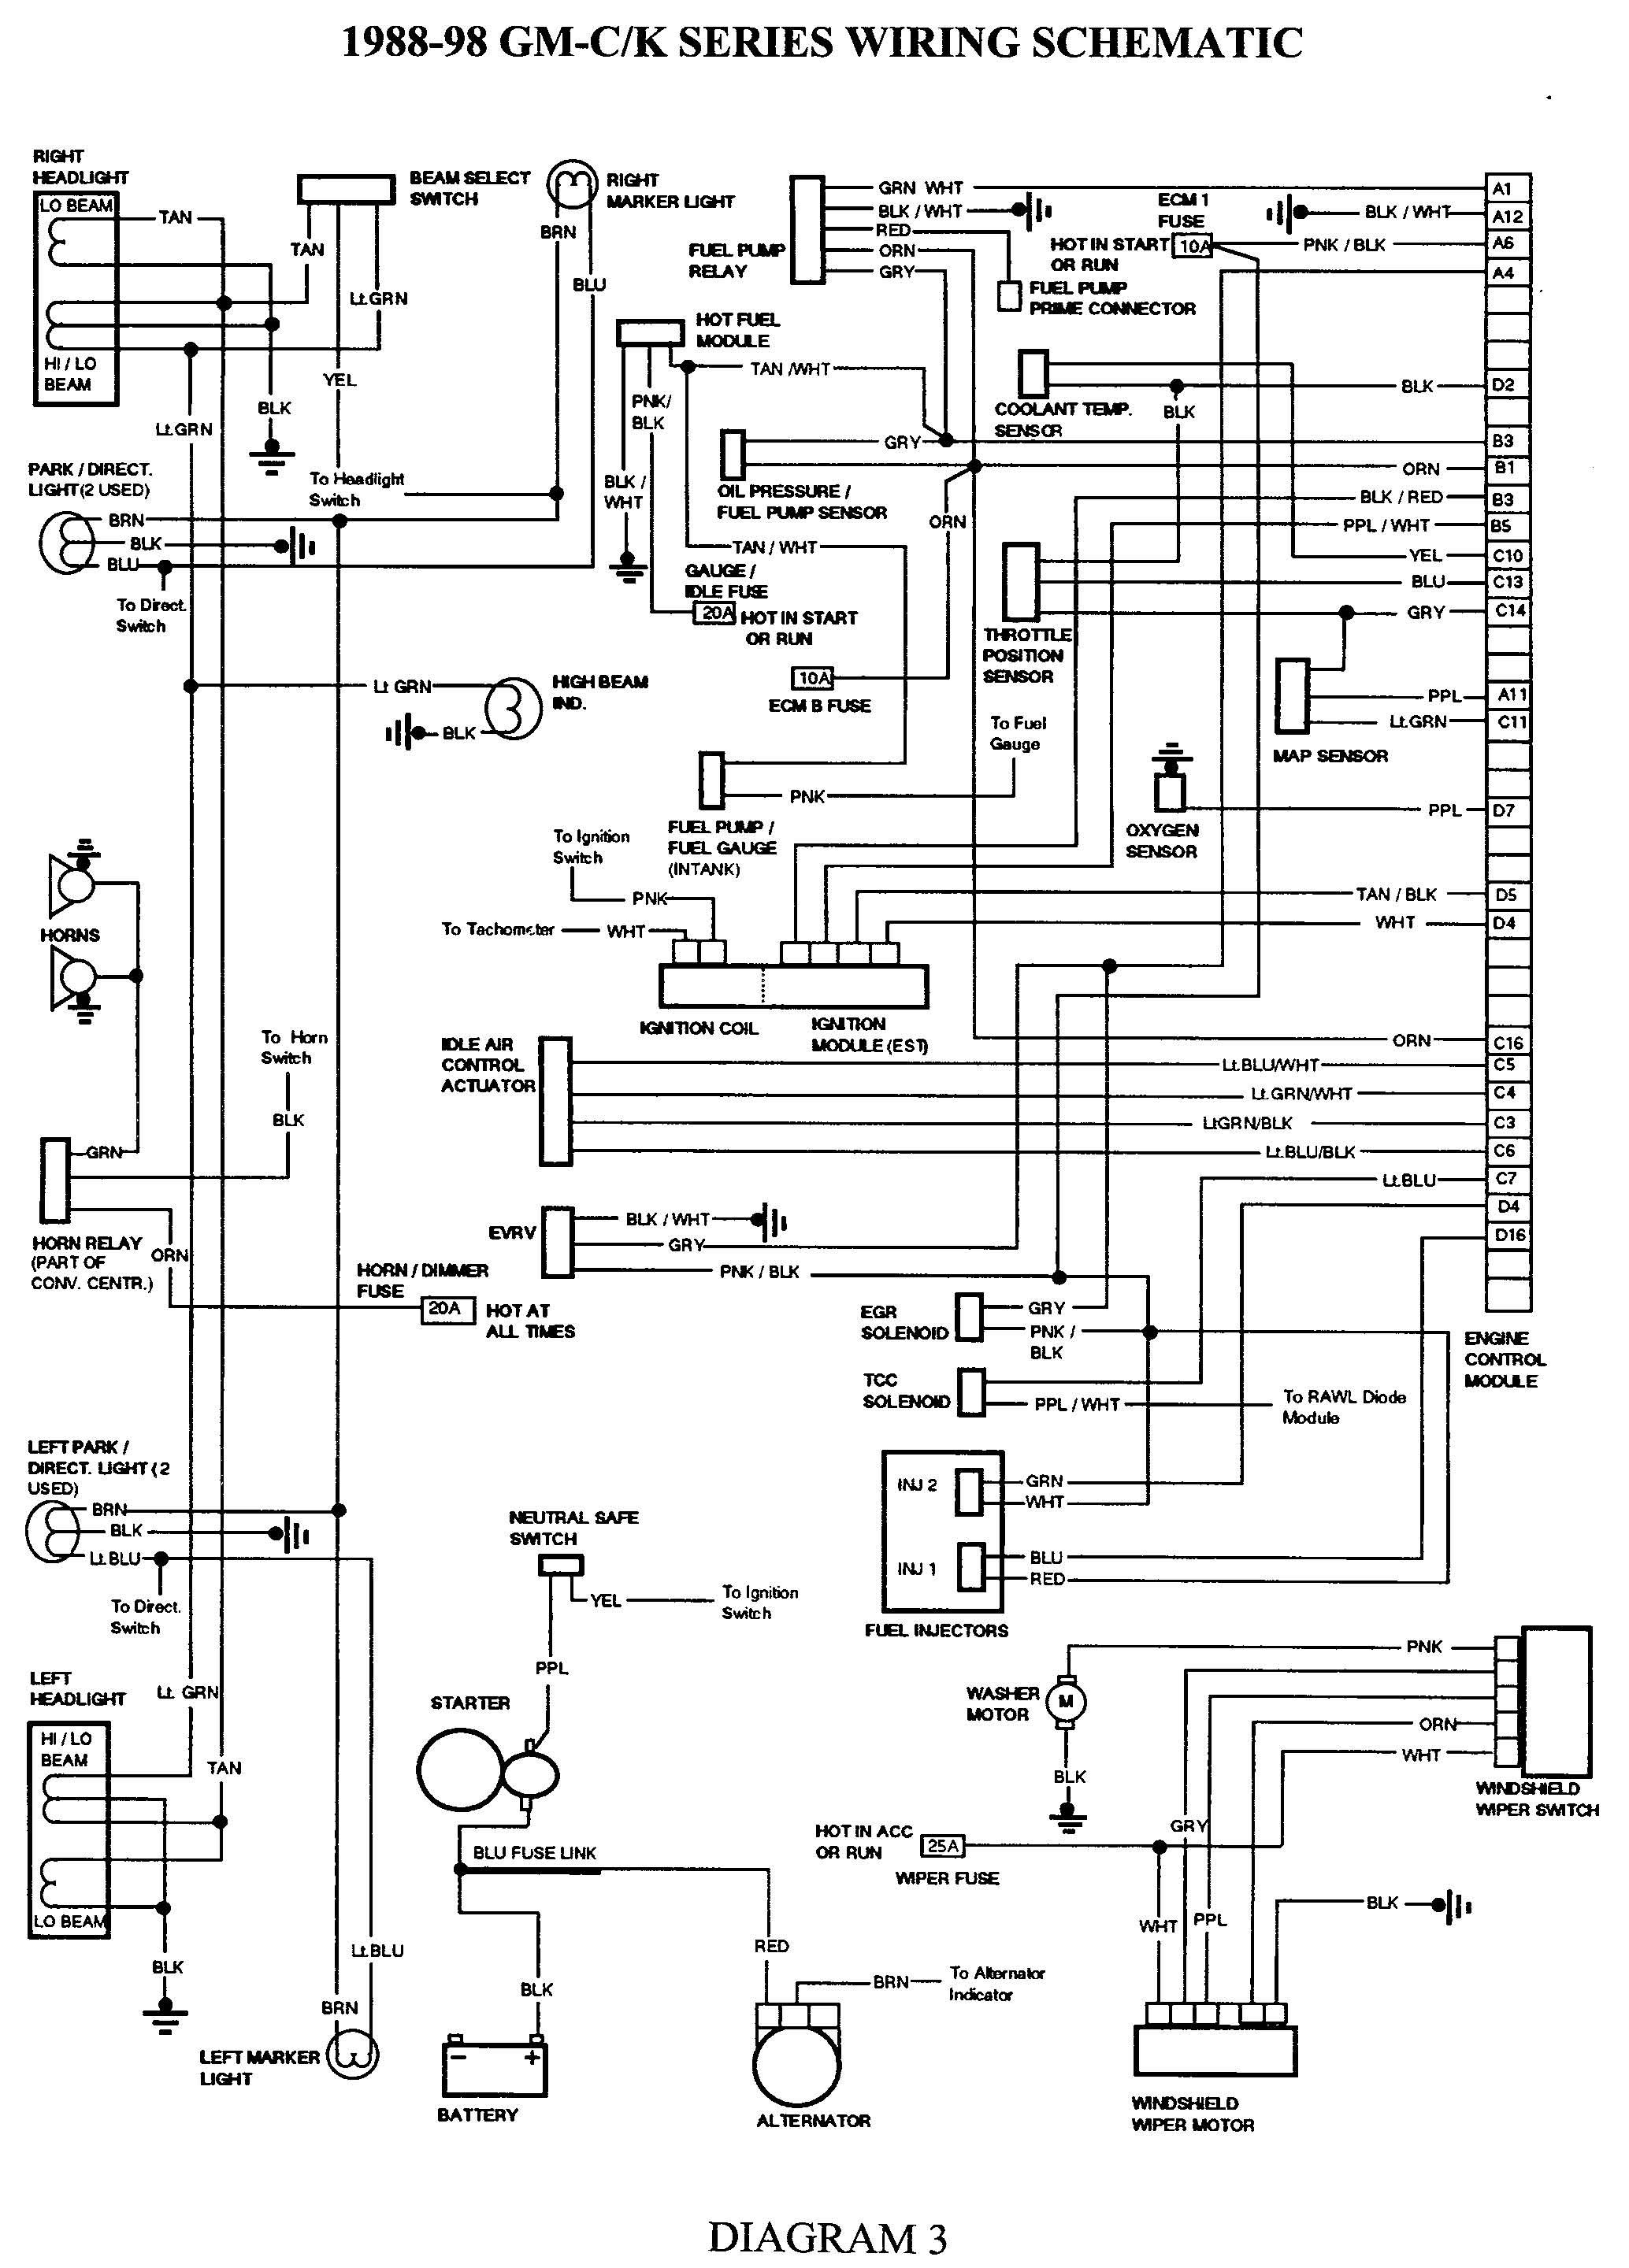 2000 S10 Starter Wiring Diagram Chameleon Life Cycle Gmc Truck Diagrams On Gm Harness 88 98 Kc